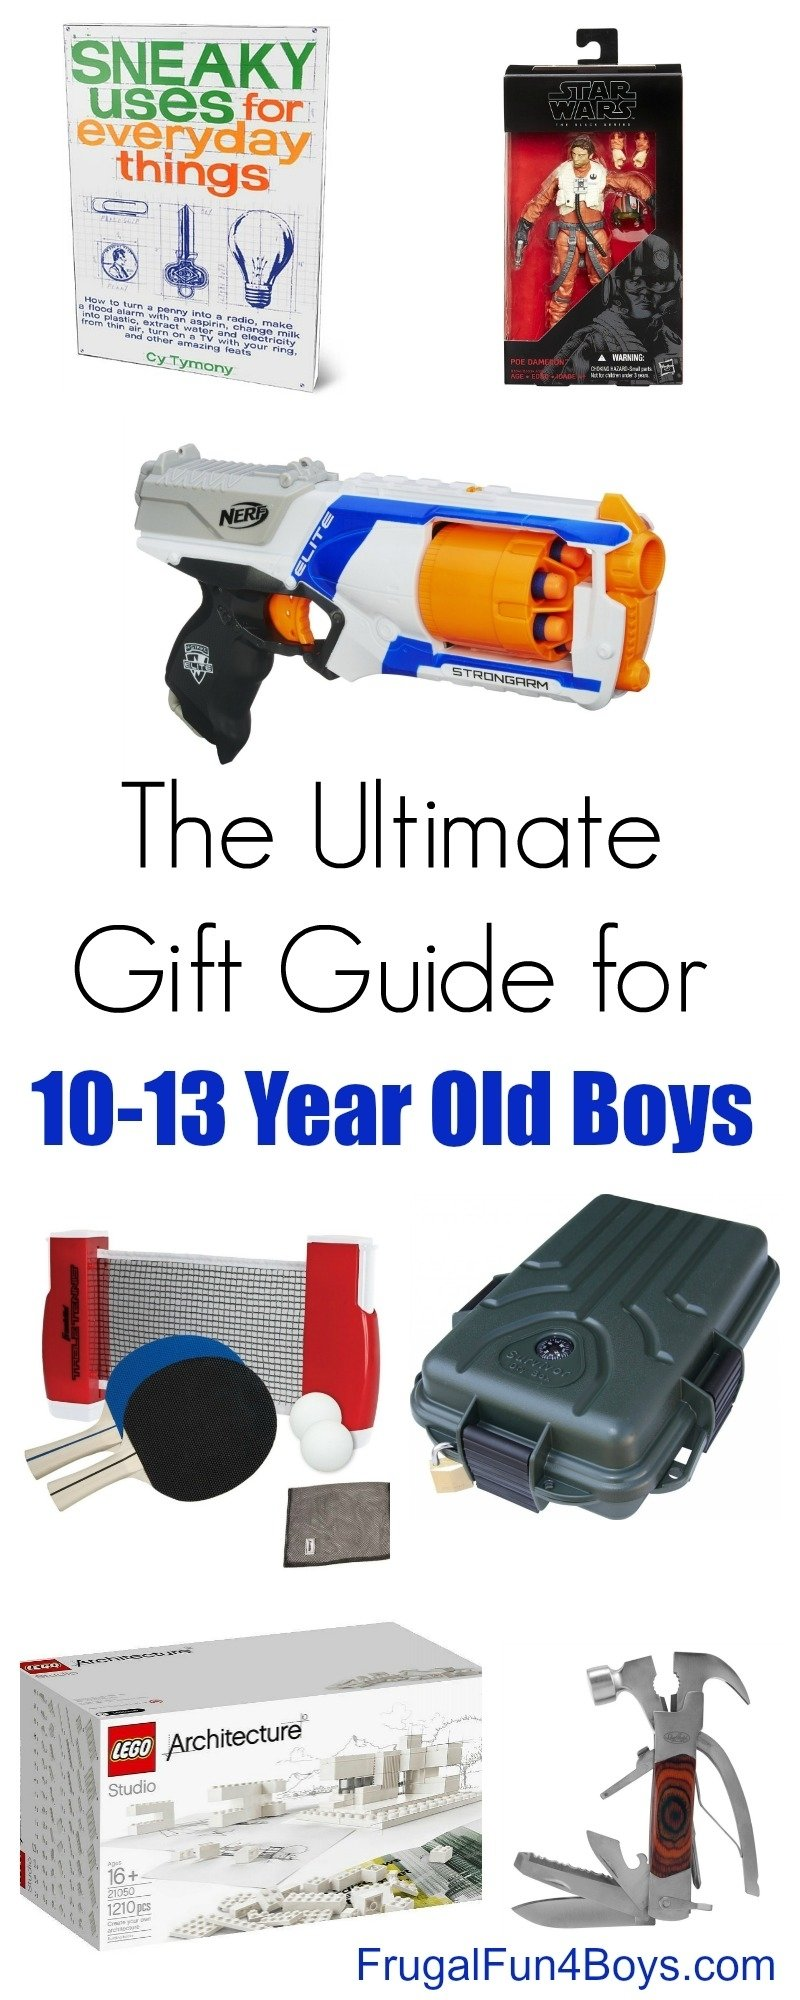 10 Best 10 Year Old Boy Christmas Gift Ideas gift ideas for 10 to 13 year old boys 22 2021